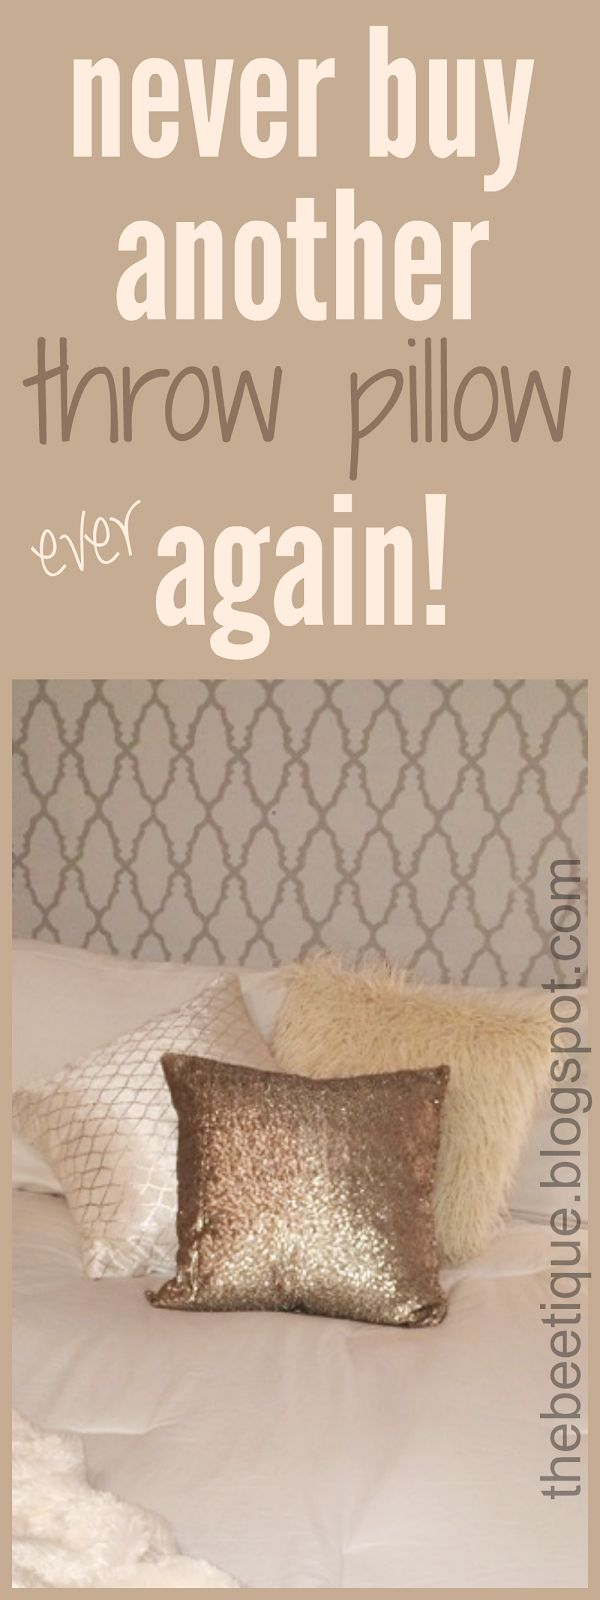 Whyyy are throw pillows so expensive? Never buy another throw pillow again - find out how I got all 3 of these throw pillows for under $10 each. Affordable faux fur and sequin throw pillows for your shabby chic diva bedroom <3 via thebeetique.blogspot.com #ThrowPillow